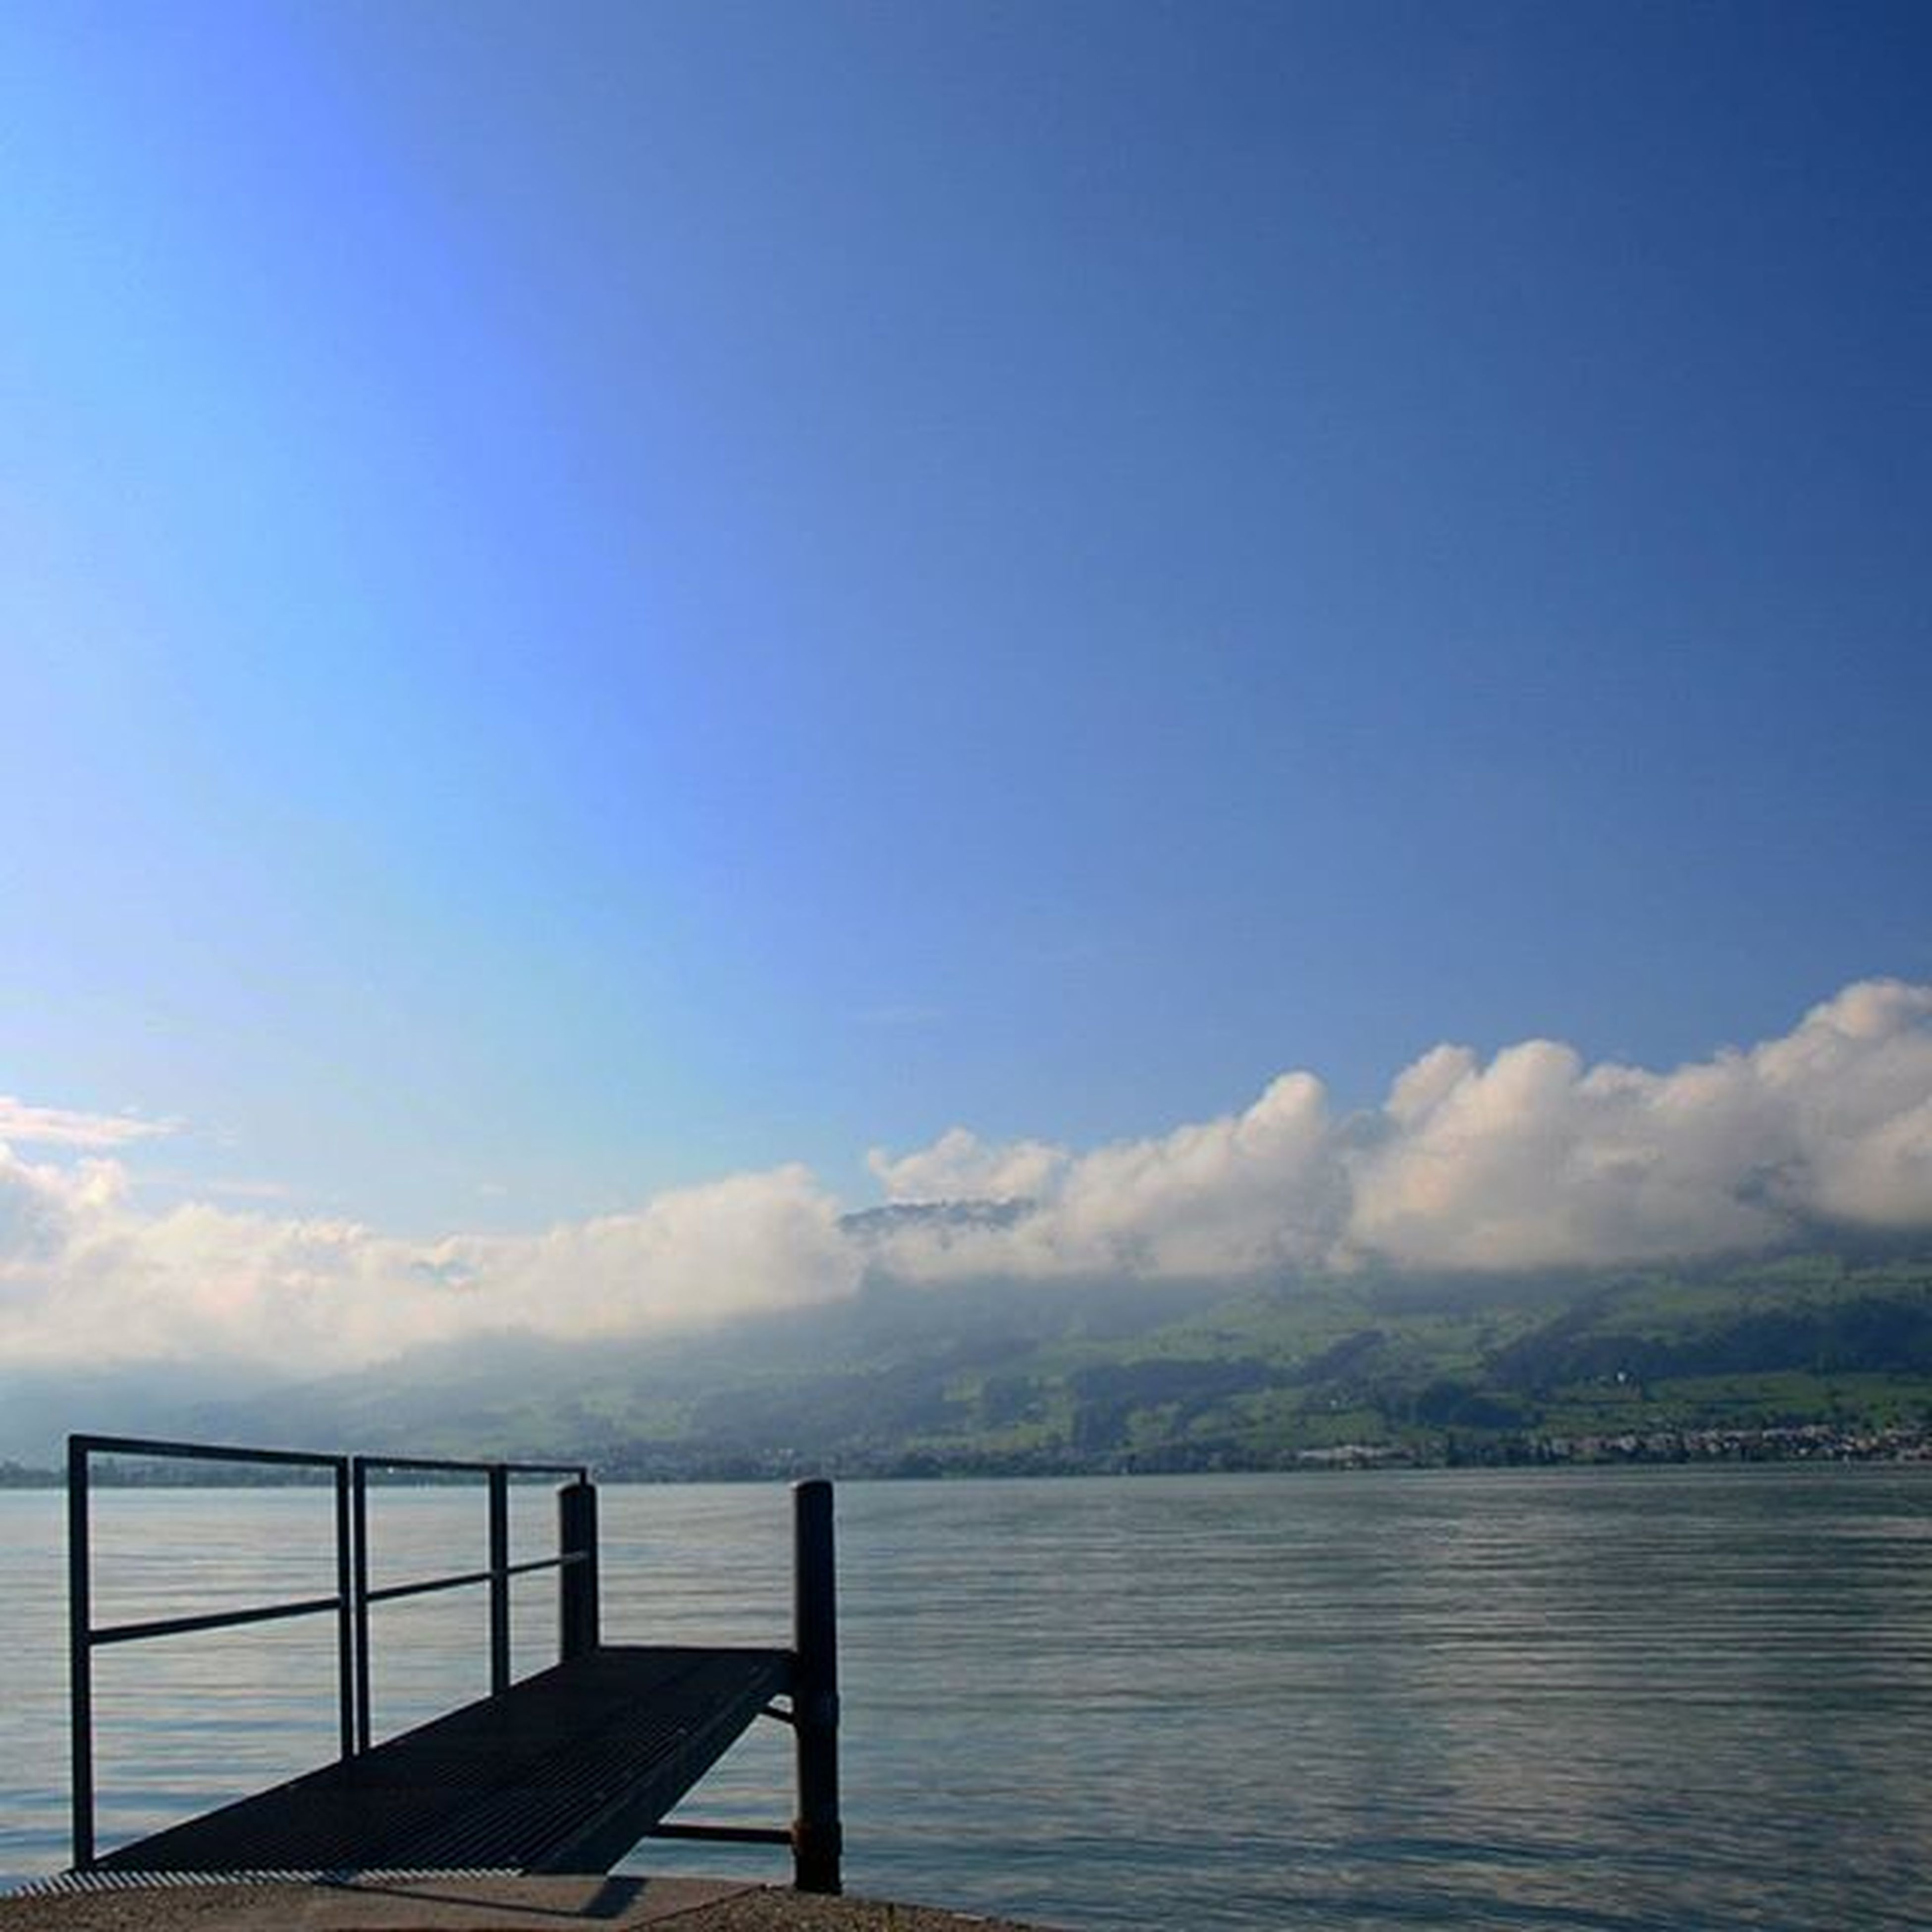 water, tranquil scene, sky, tranquility, scenics, sea, railing, beauty in nature, blue, nature, lake, pier, idyllic, cloud, cloud - sky, calm, waterfront, river, rippled, outdoors